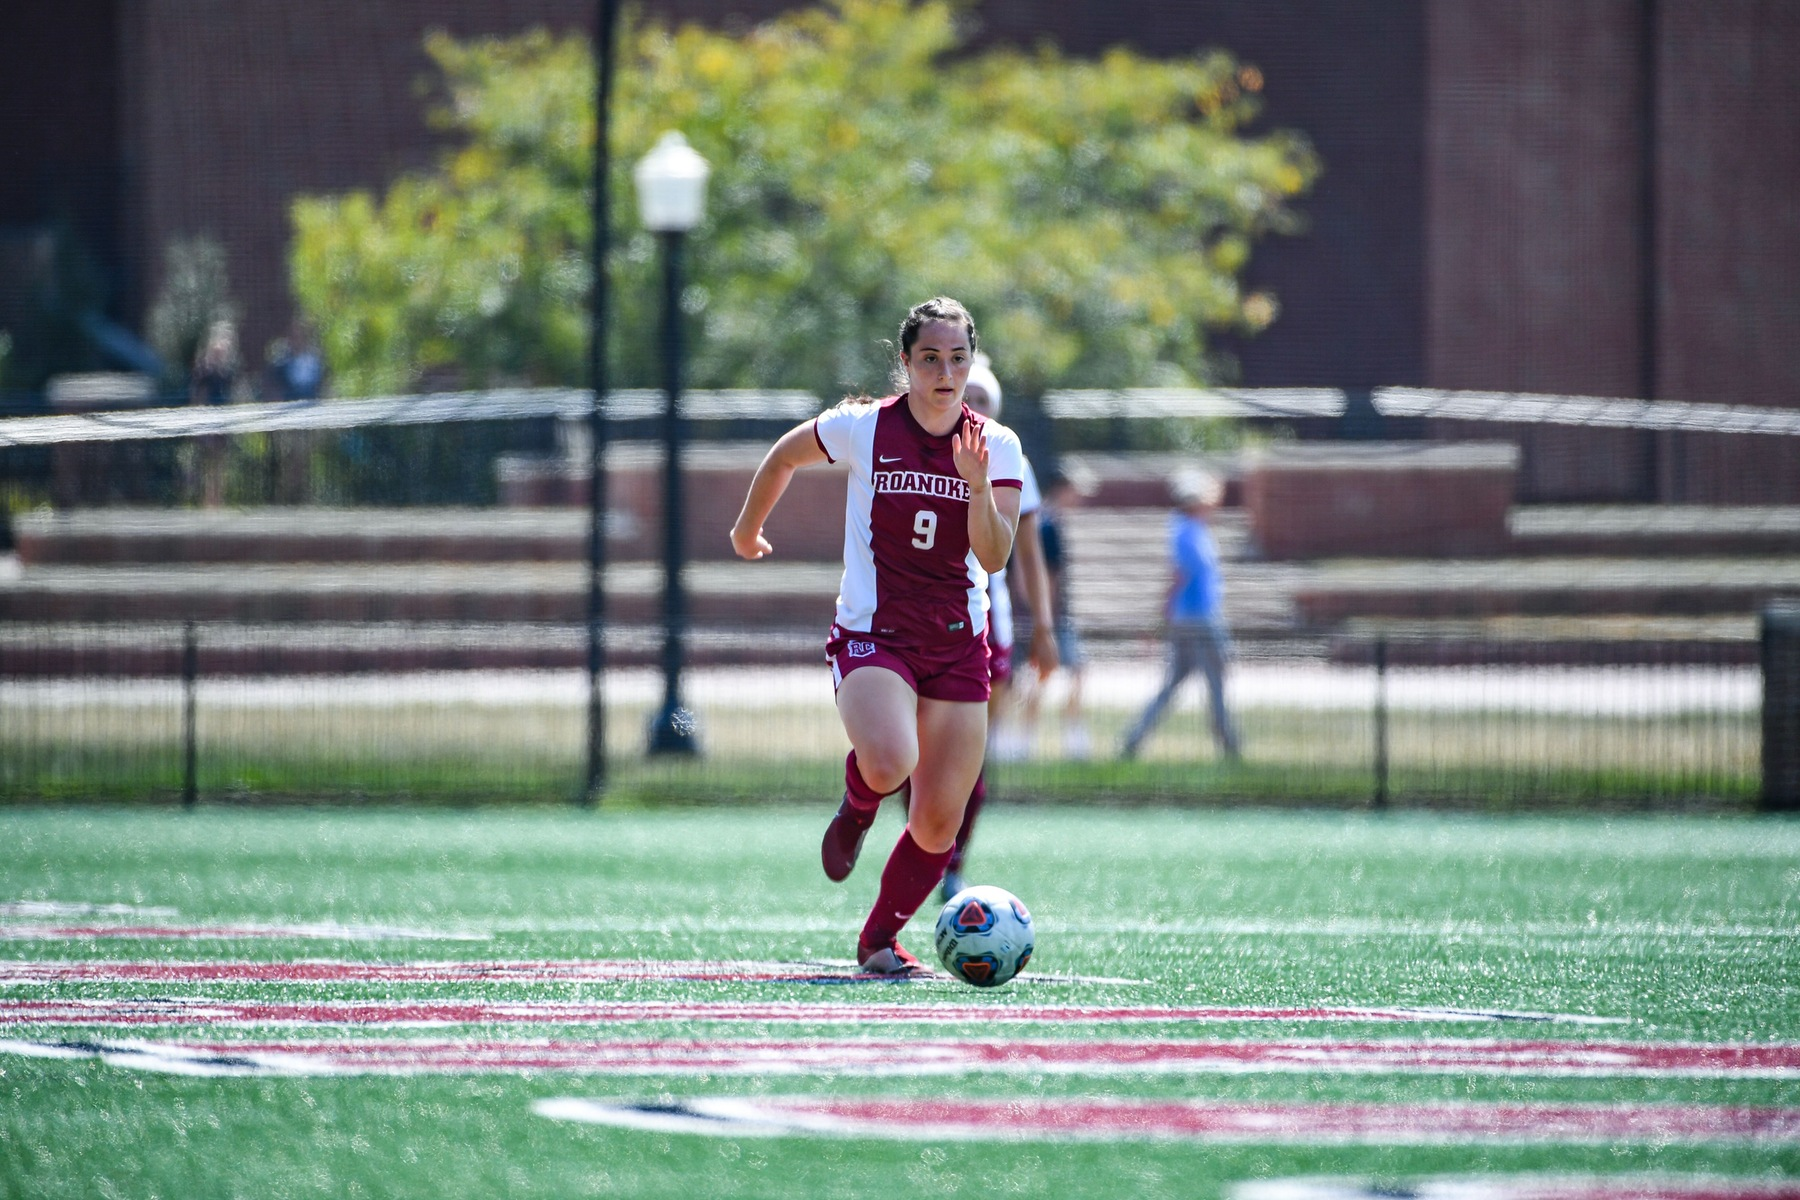 Roanoke earned a 1-0 ODAC road win at Guilford on Wednesday.